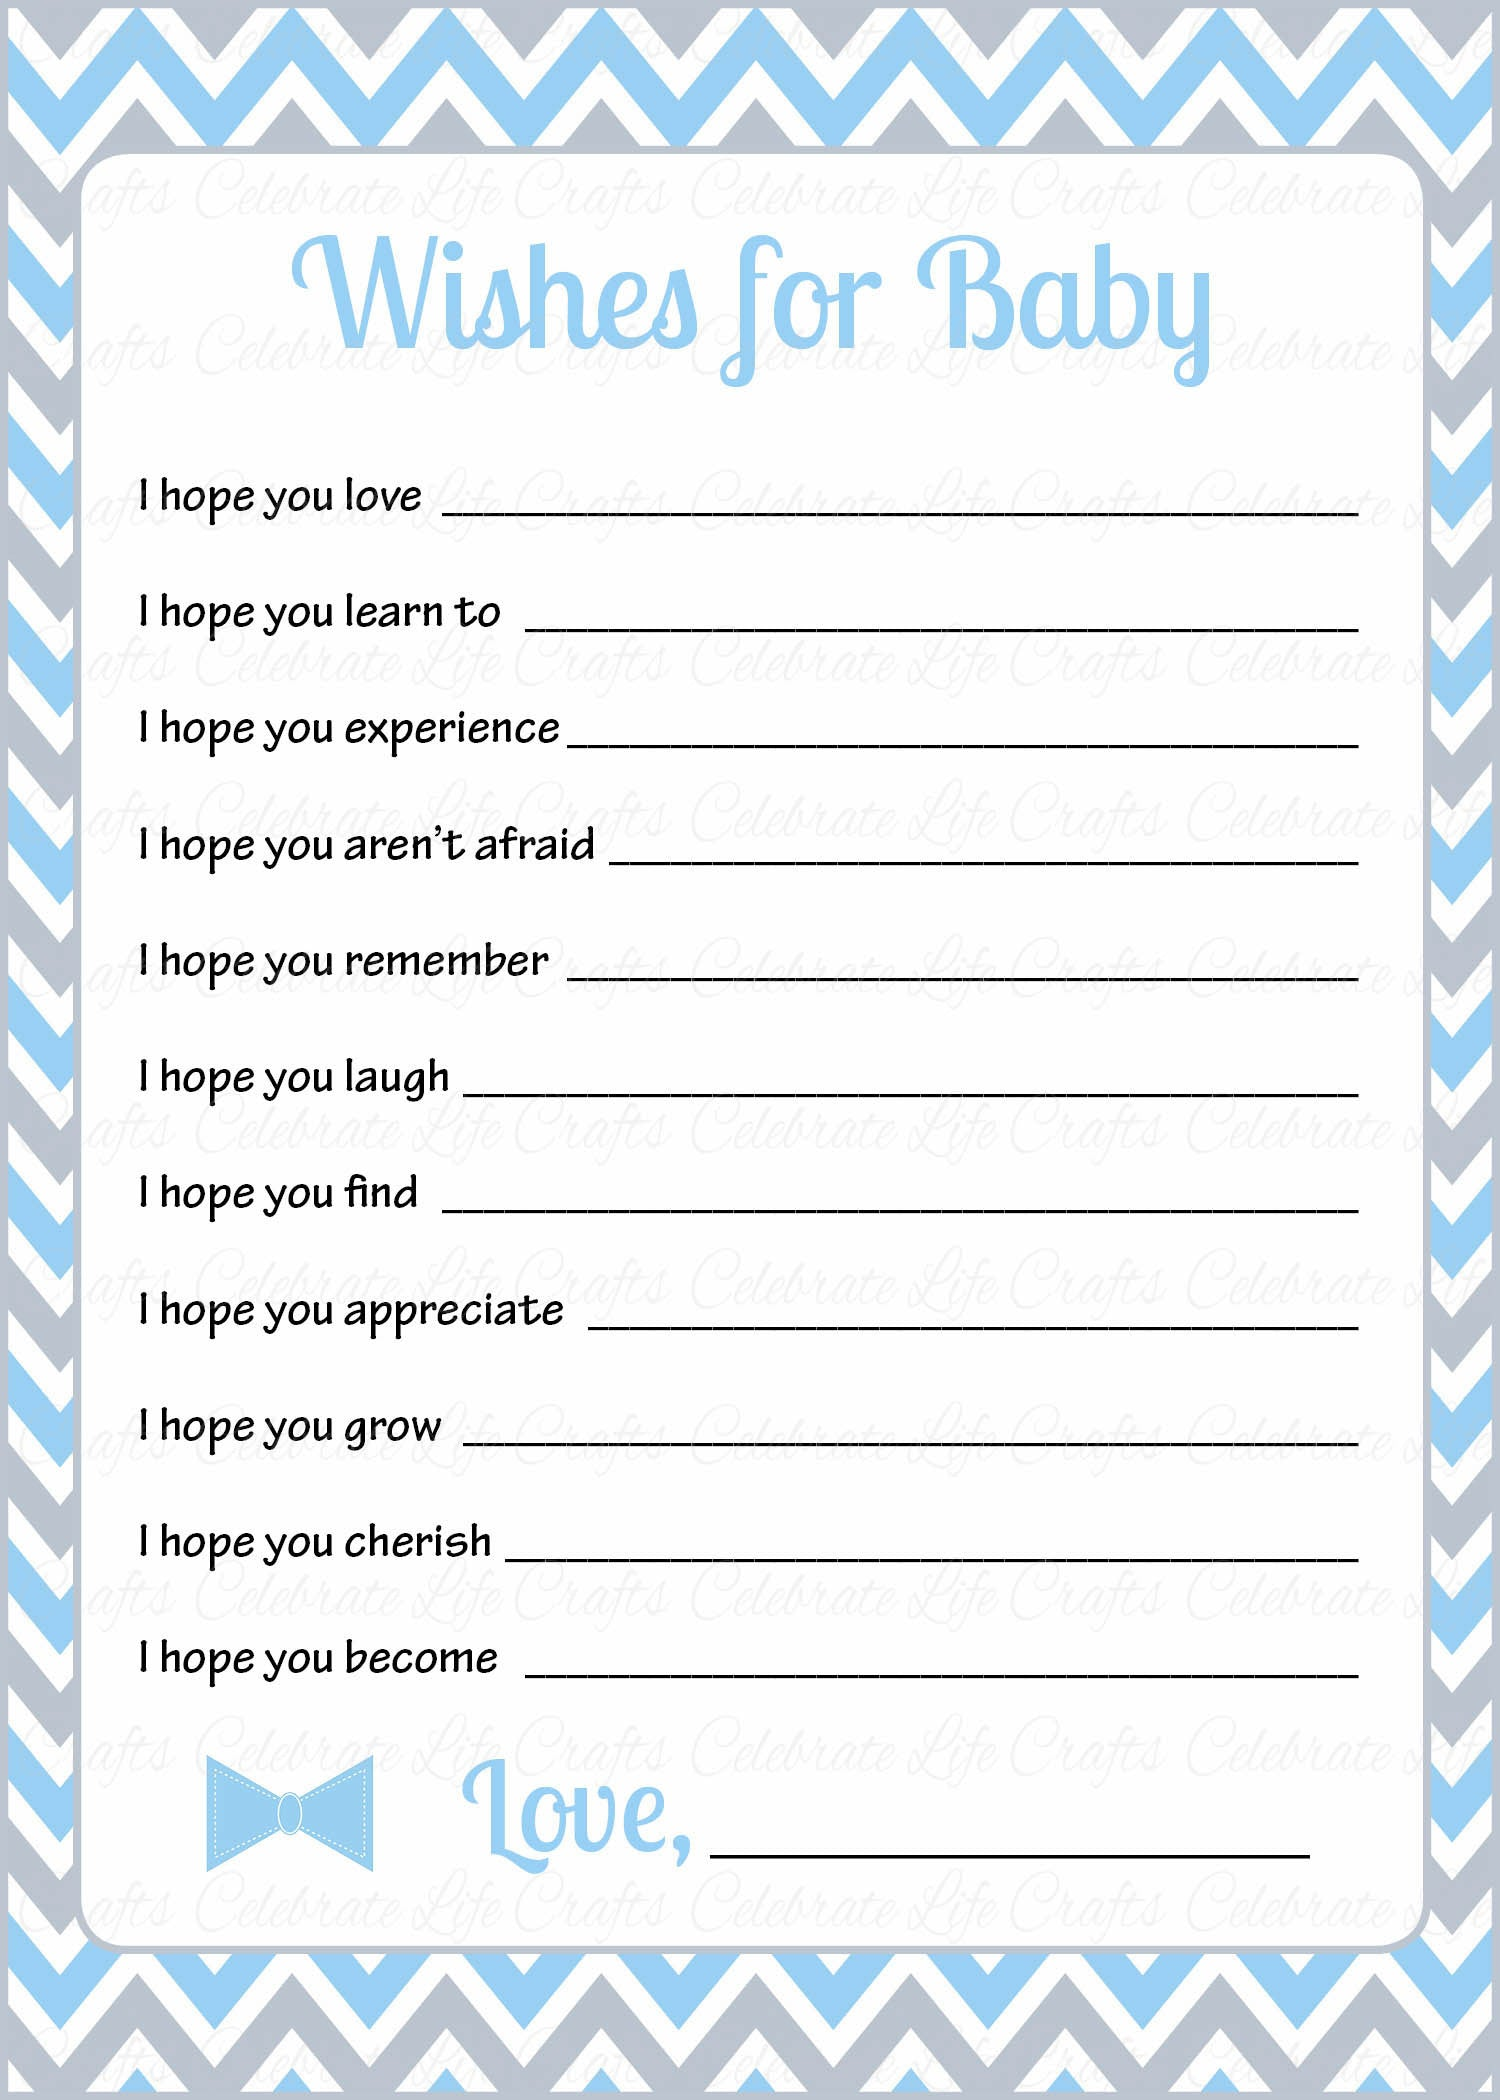 Wishes For Baby Shower Activity Little Man Baby Shower Theme For